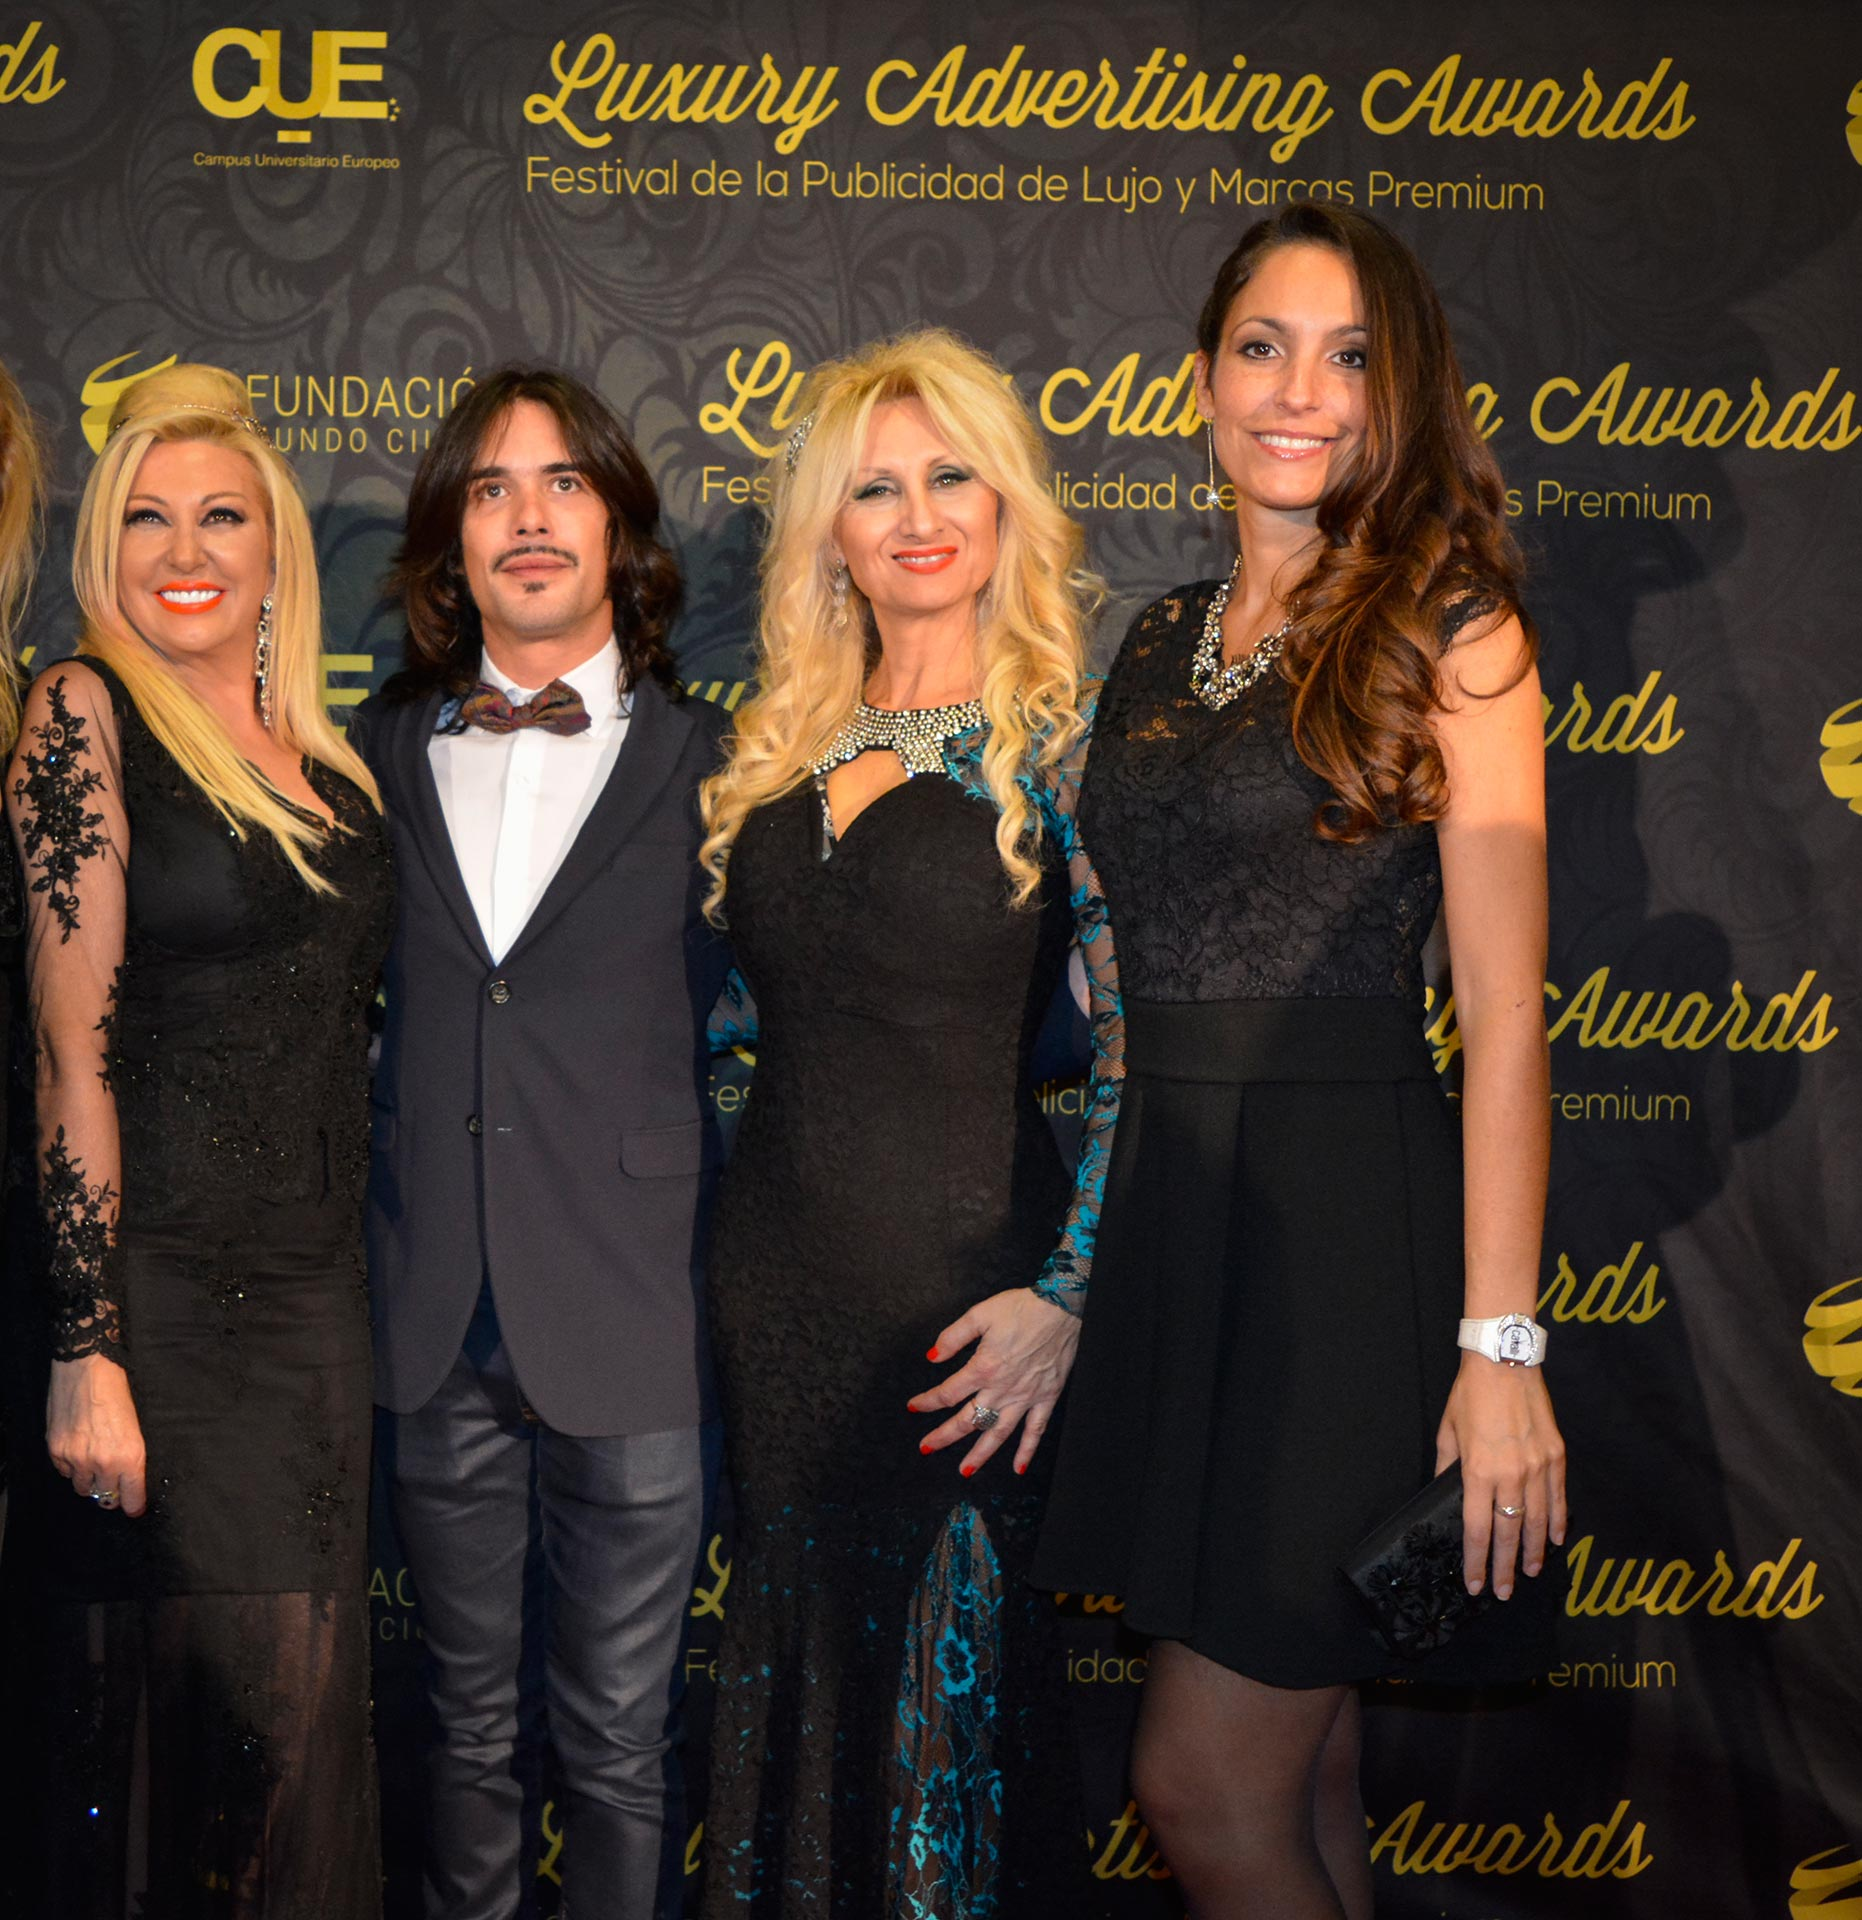 Ana, Juan de Juan, Antonella & Ariana at Luxury Advertising Awards - www.arianasoffici.com